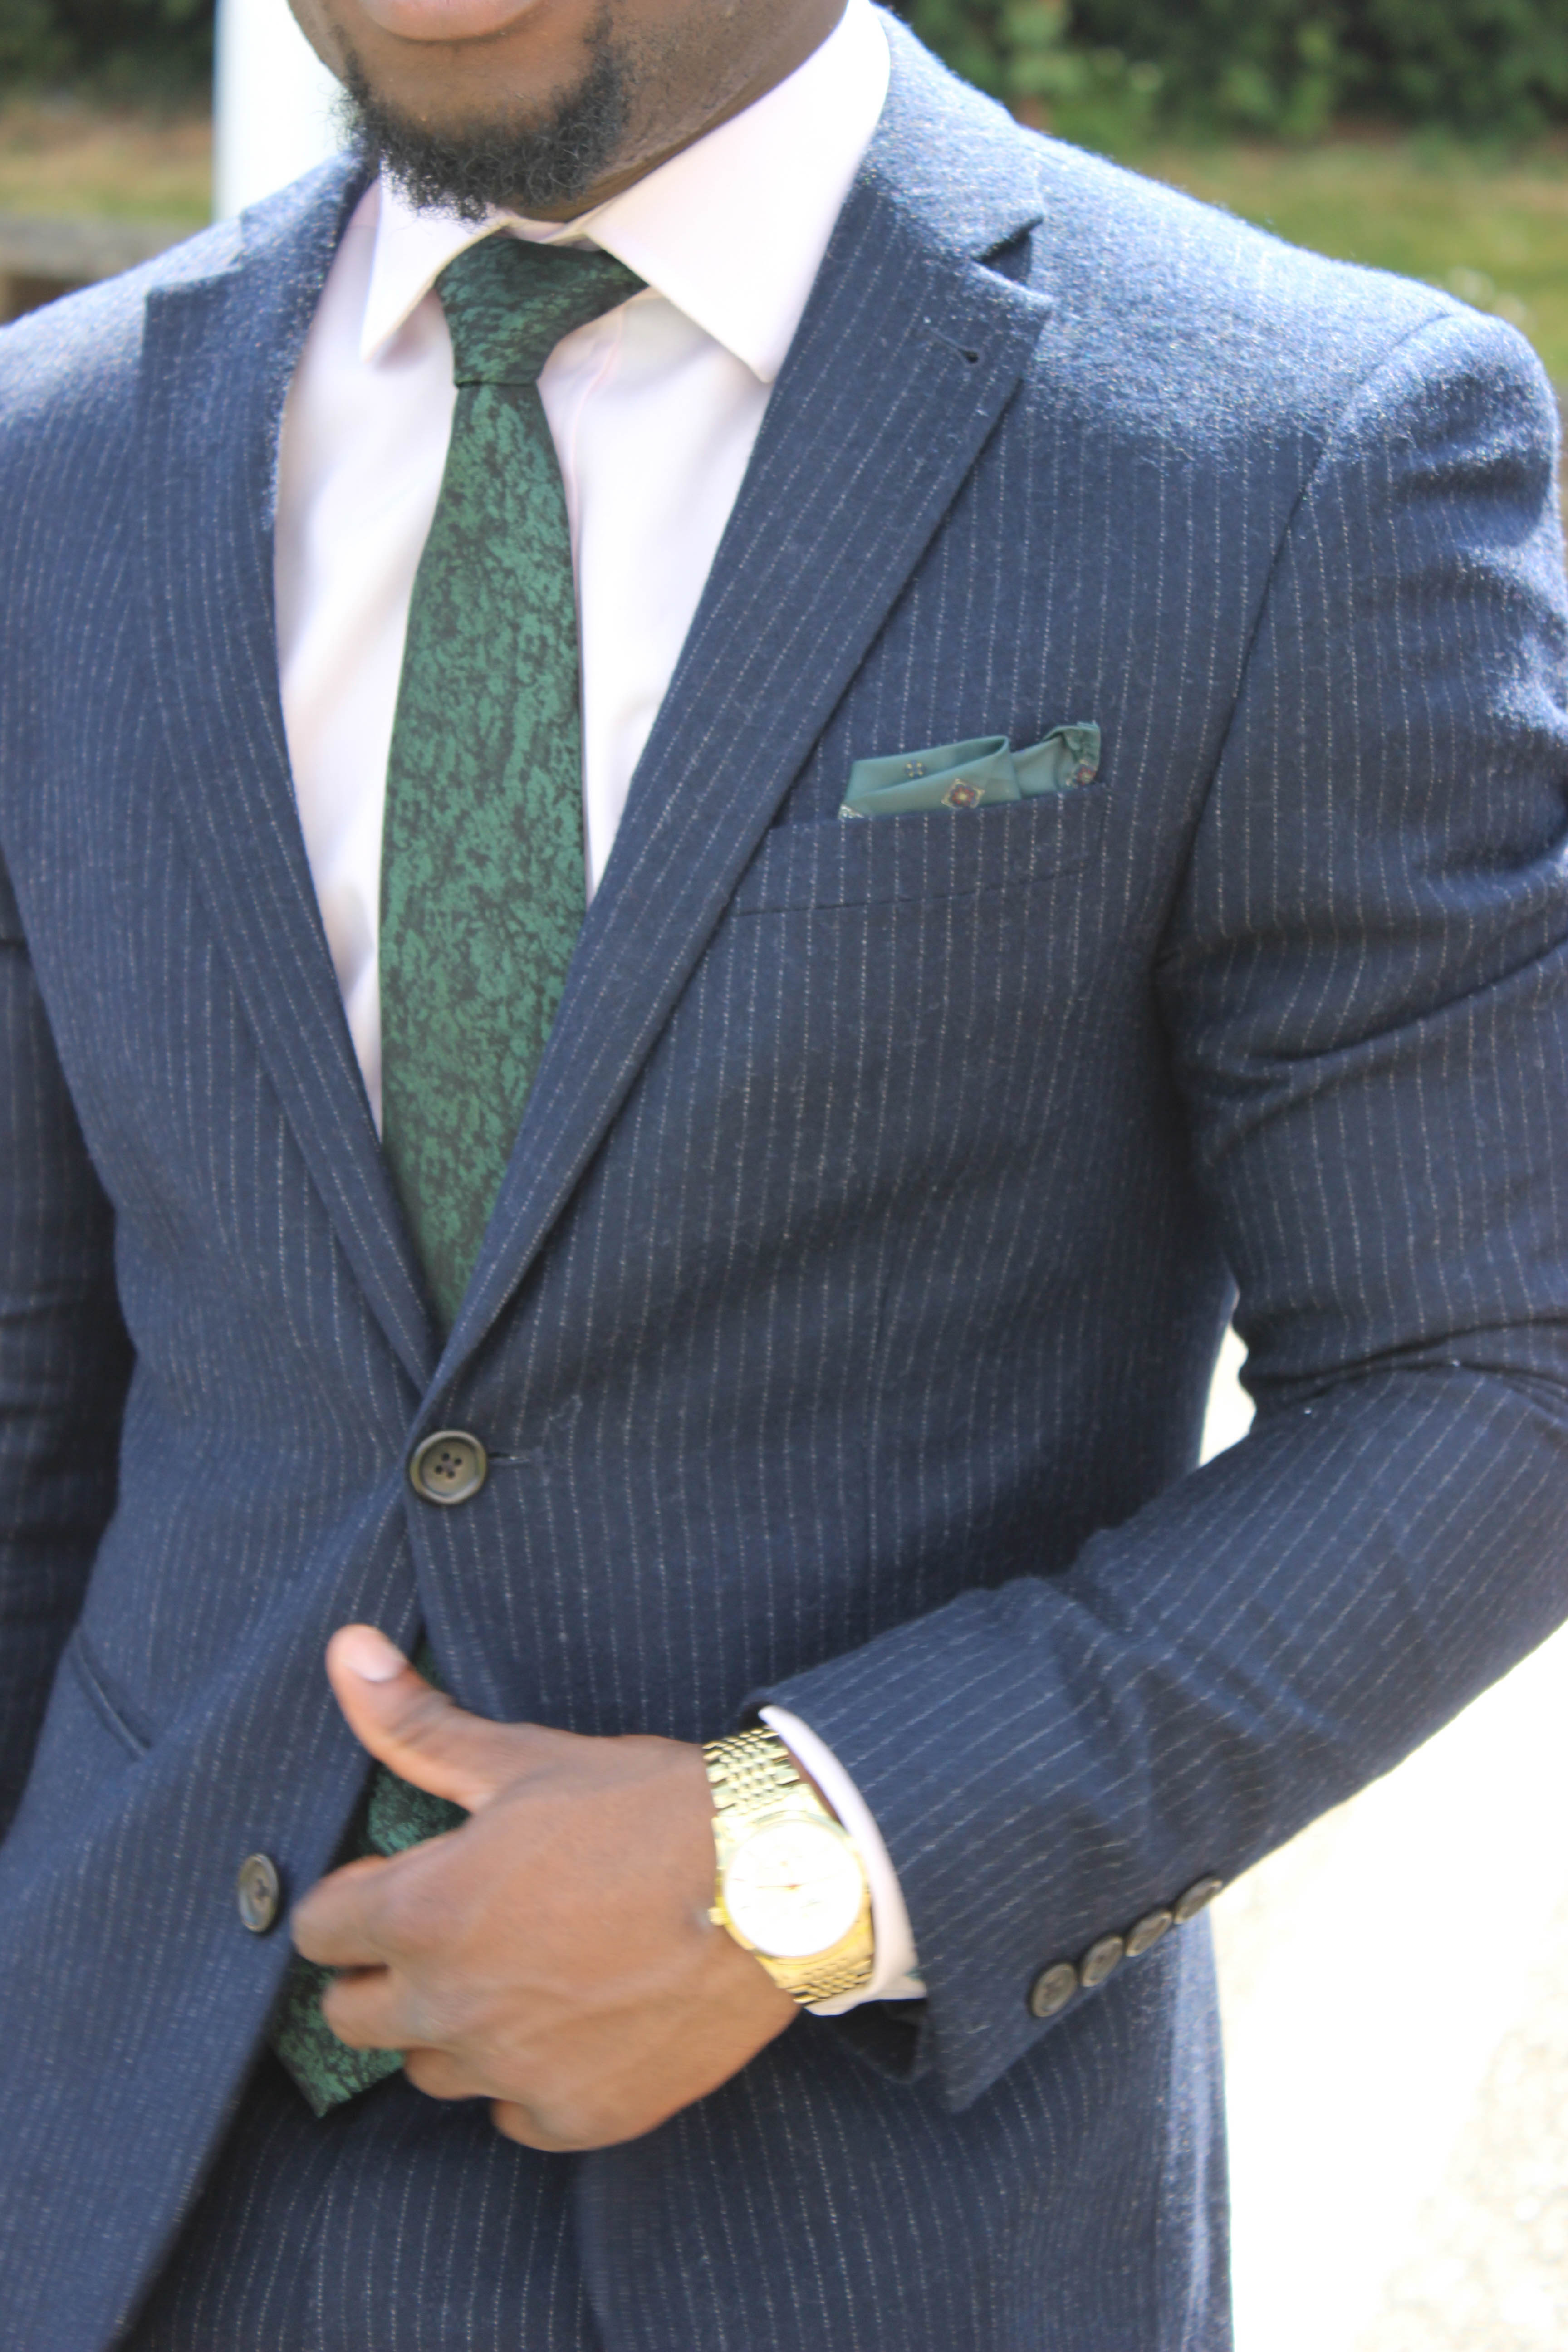 The Pinstripe Suit - Yinka Jermaine